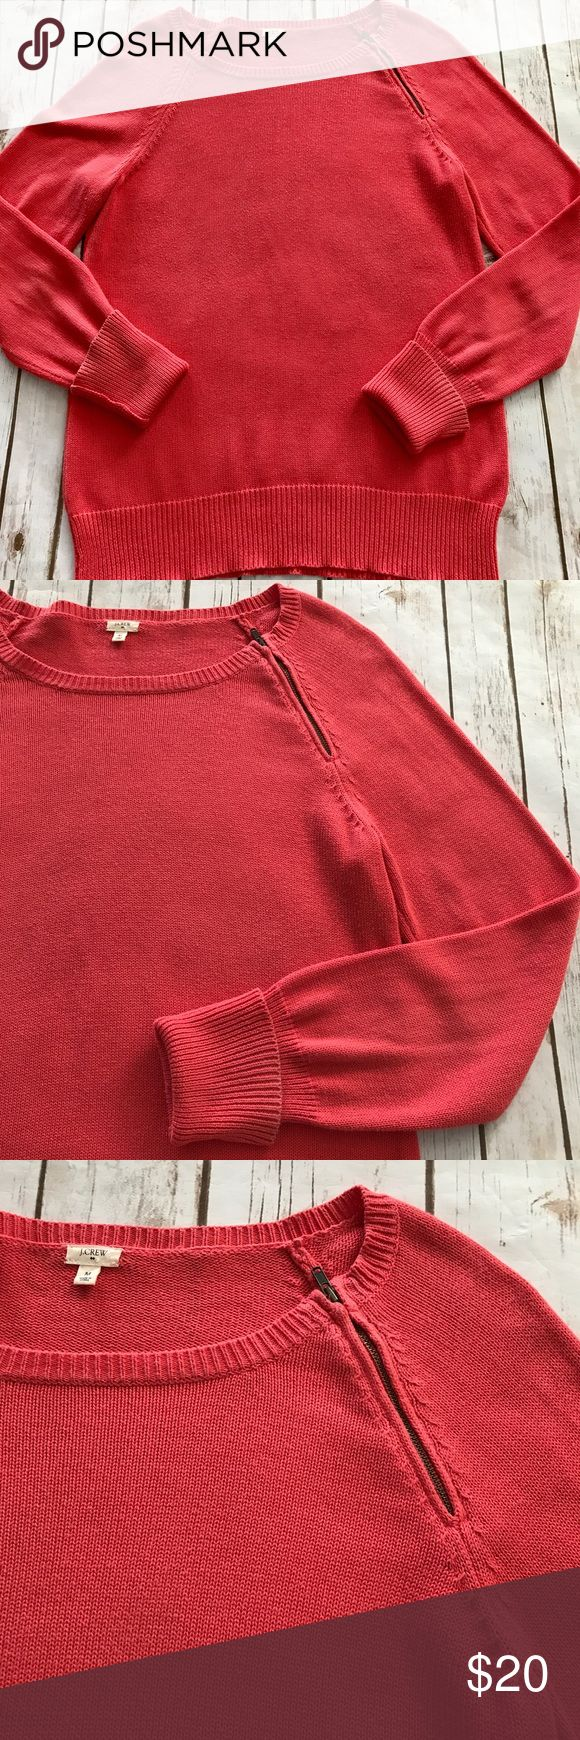 J. Crew - Lovely Coral Sweater, Size Medium J. Crew - Lovely Coral Sweater, Size Medium. In good preowned condition, some very minor signs of wear. I just accordingly. Please be sure to check out all of my other boutique items. Same day or next business day shipping is guaranteed! J. Crew Sweaters